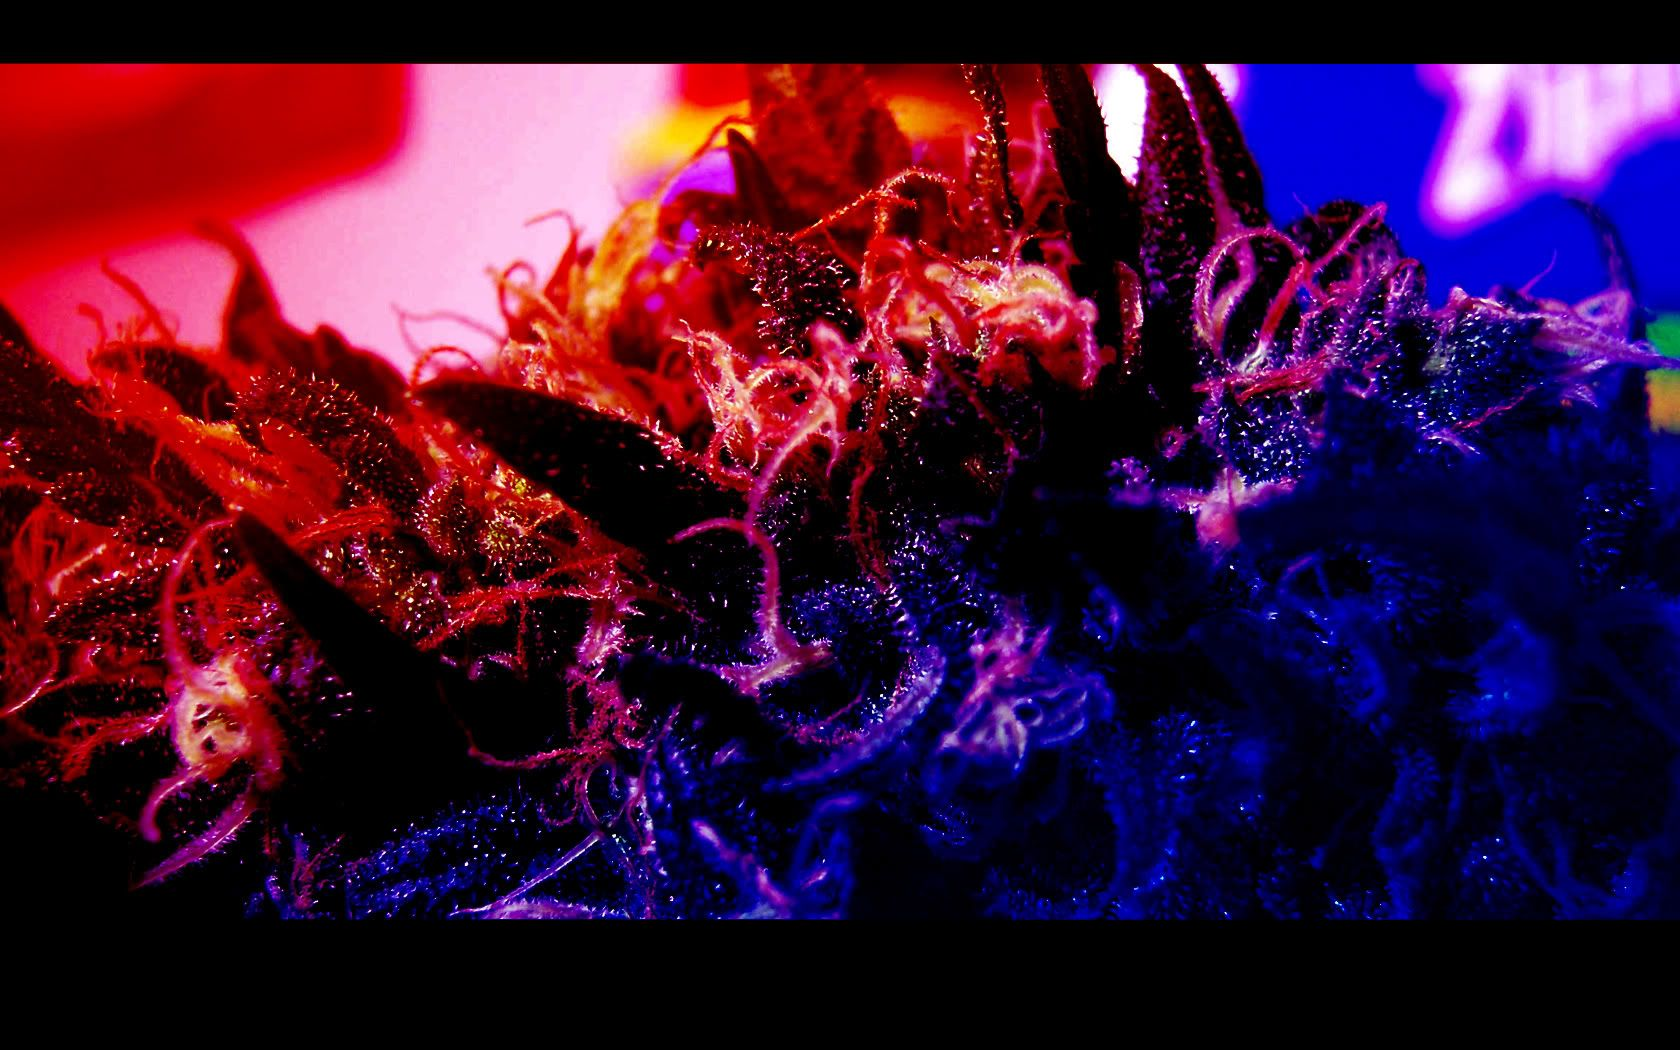 Iphone 5 Hd Wallpapers 1080p: Trippy Smoke Wallpapers - HD